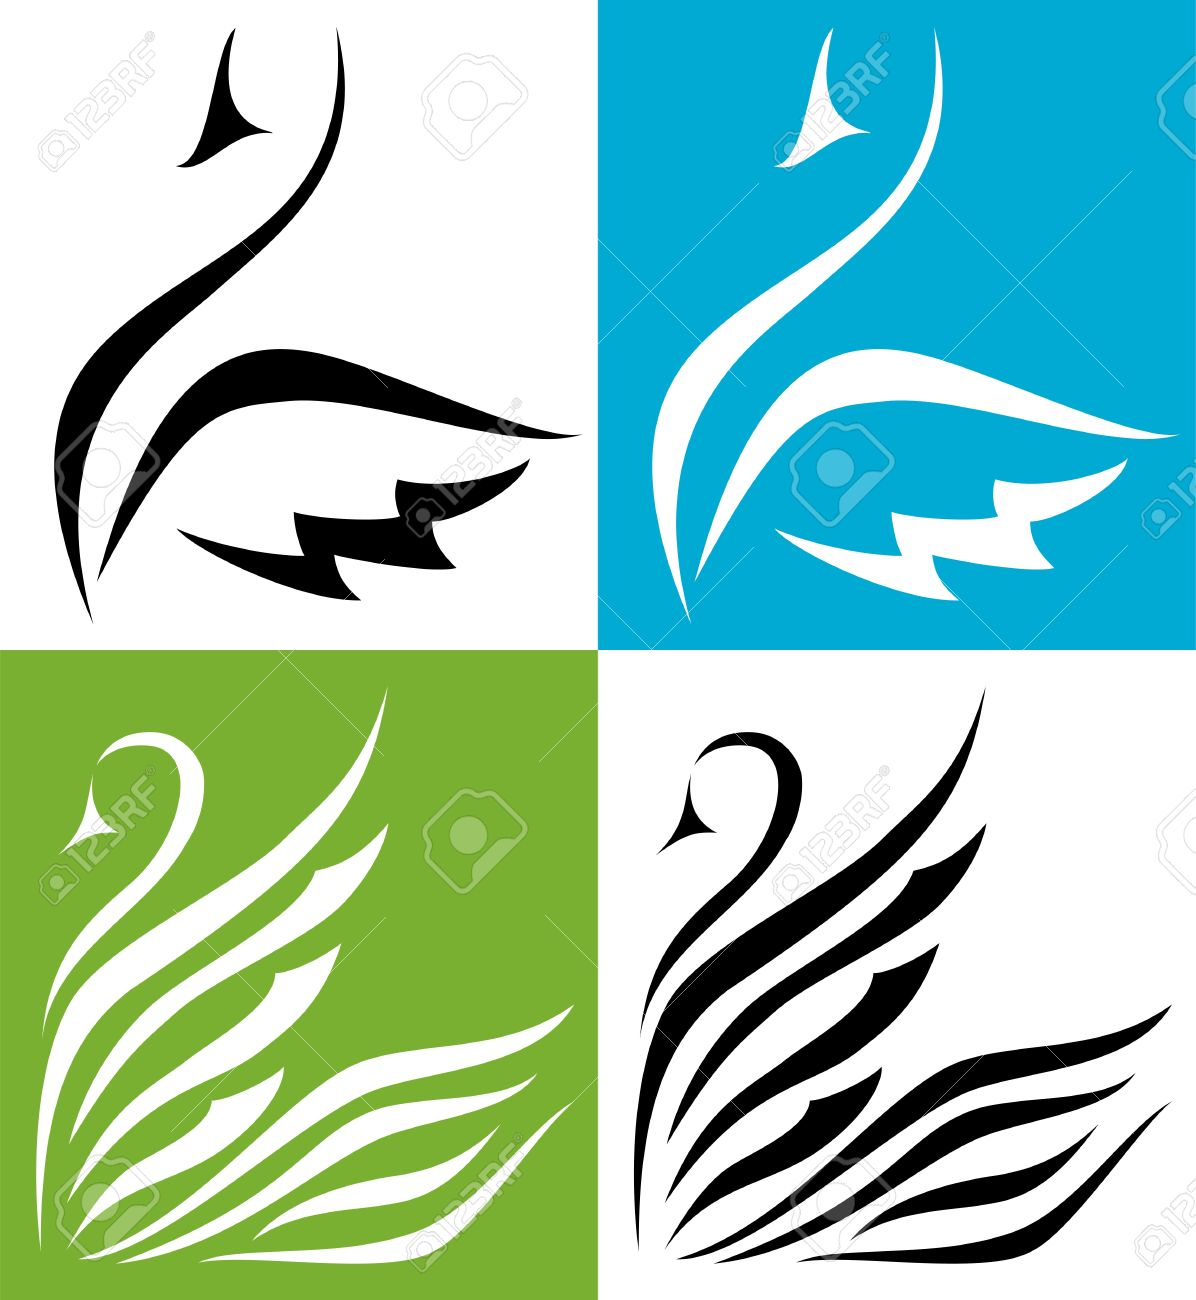 5,793 Swans Cliparts, Stock Vector And Royalty Free Swans.